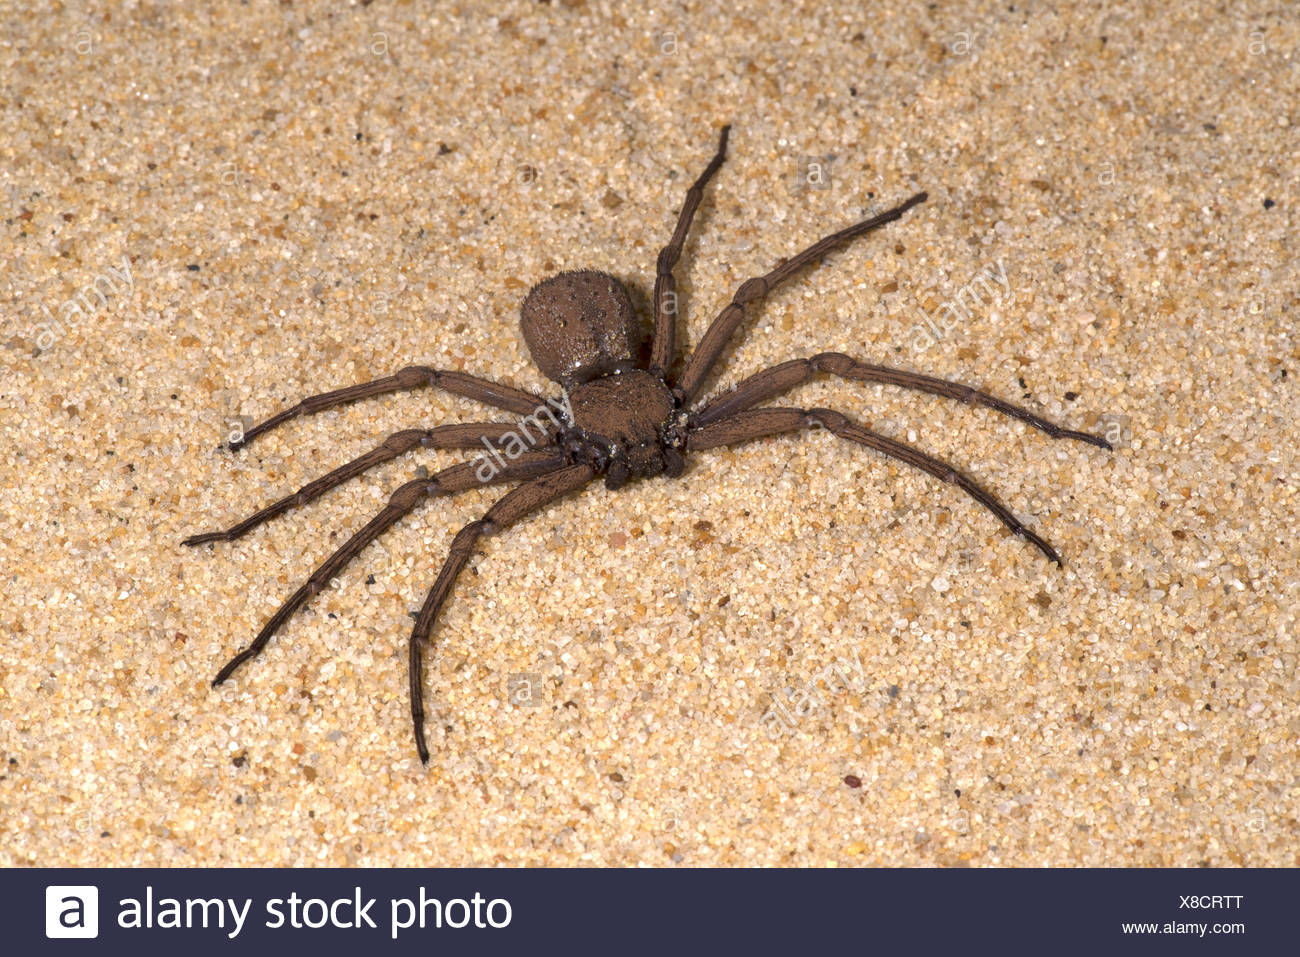 Sand Spider Sicarius Terrosus Sequence 1 Of Burying In Sand Alsoed Six Eyed Sand Spider Of Southern Africa Six Eyes Arranged In Three Groups